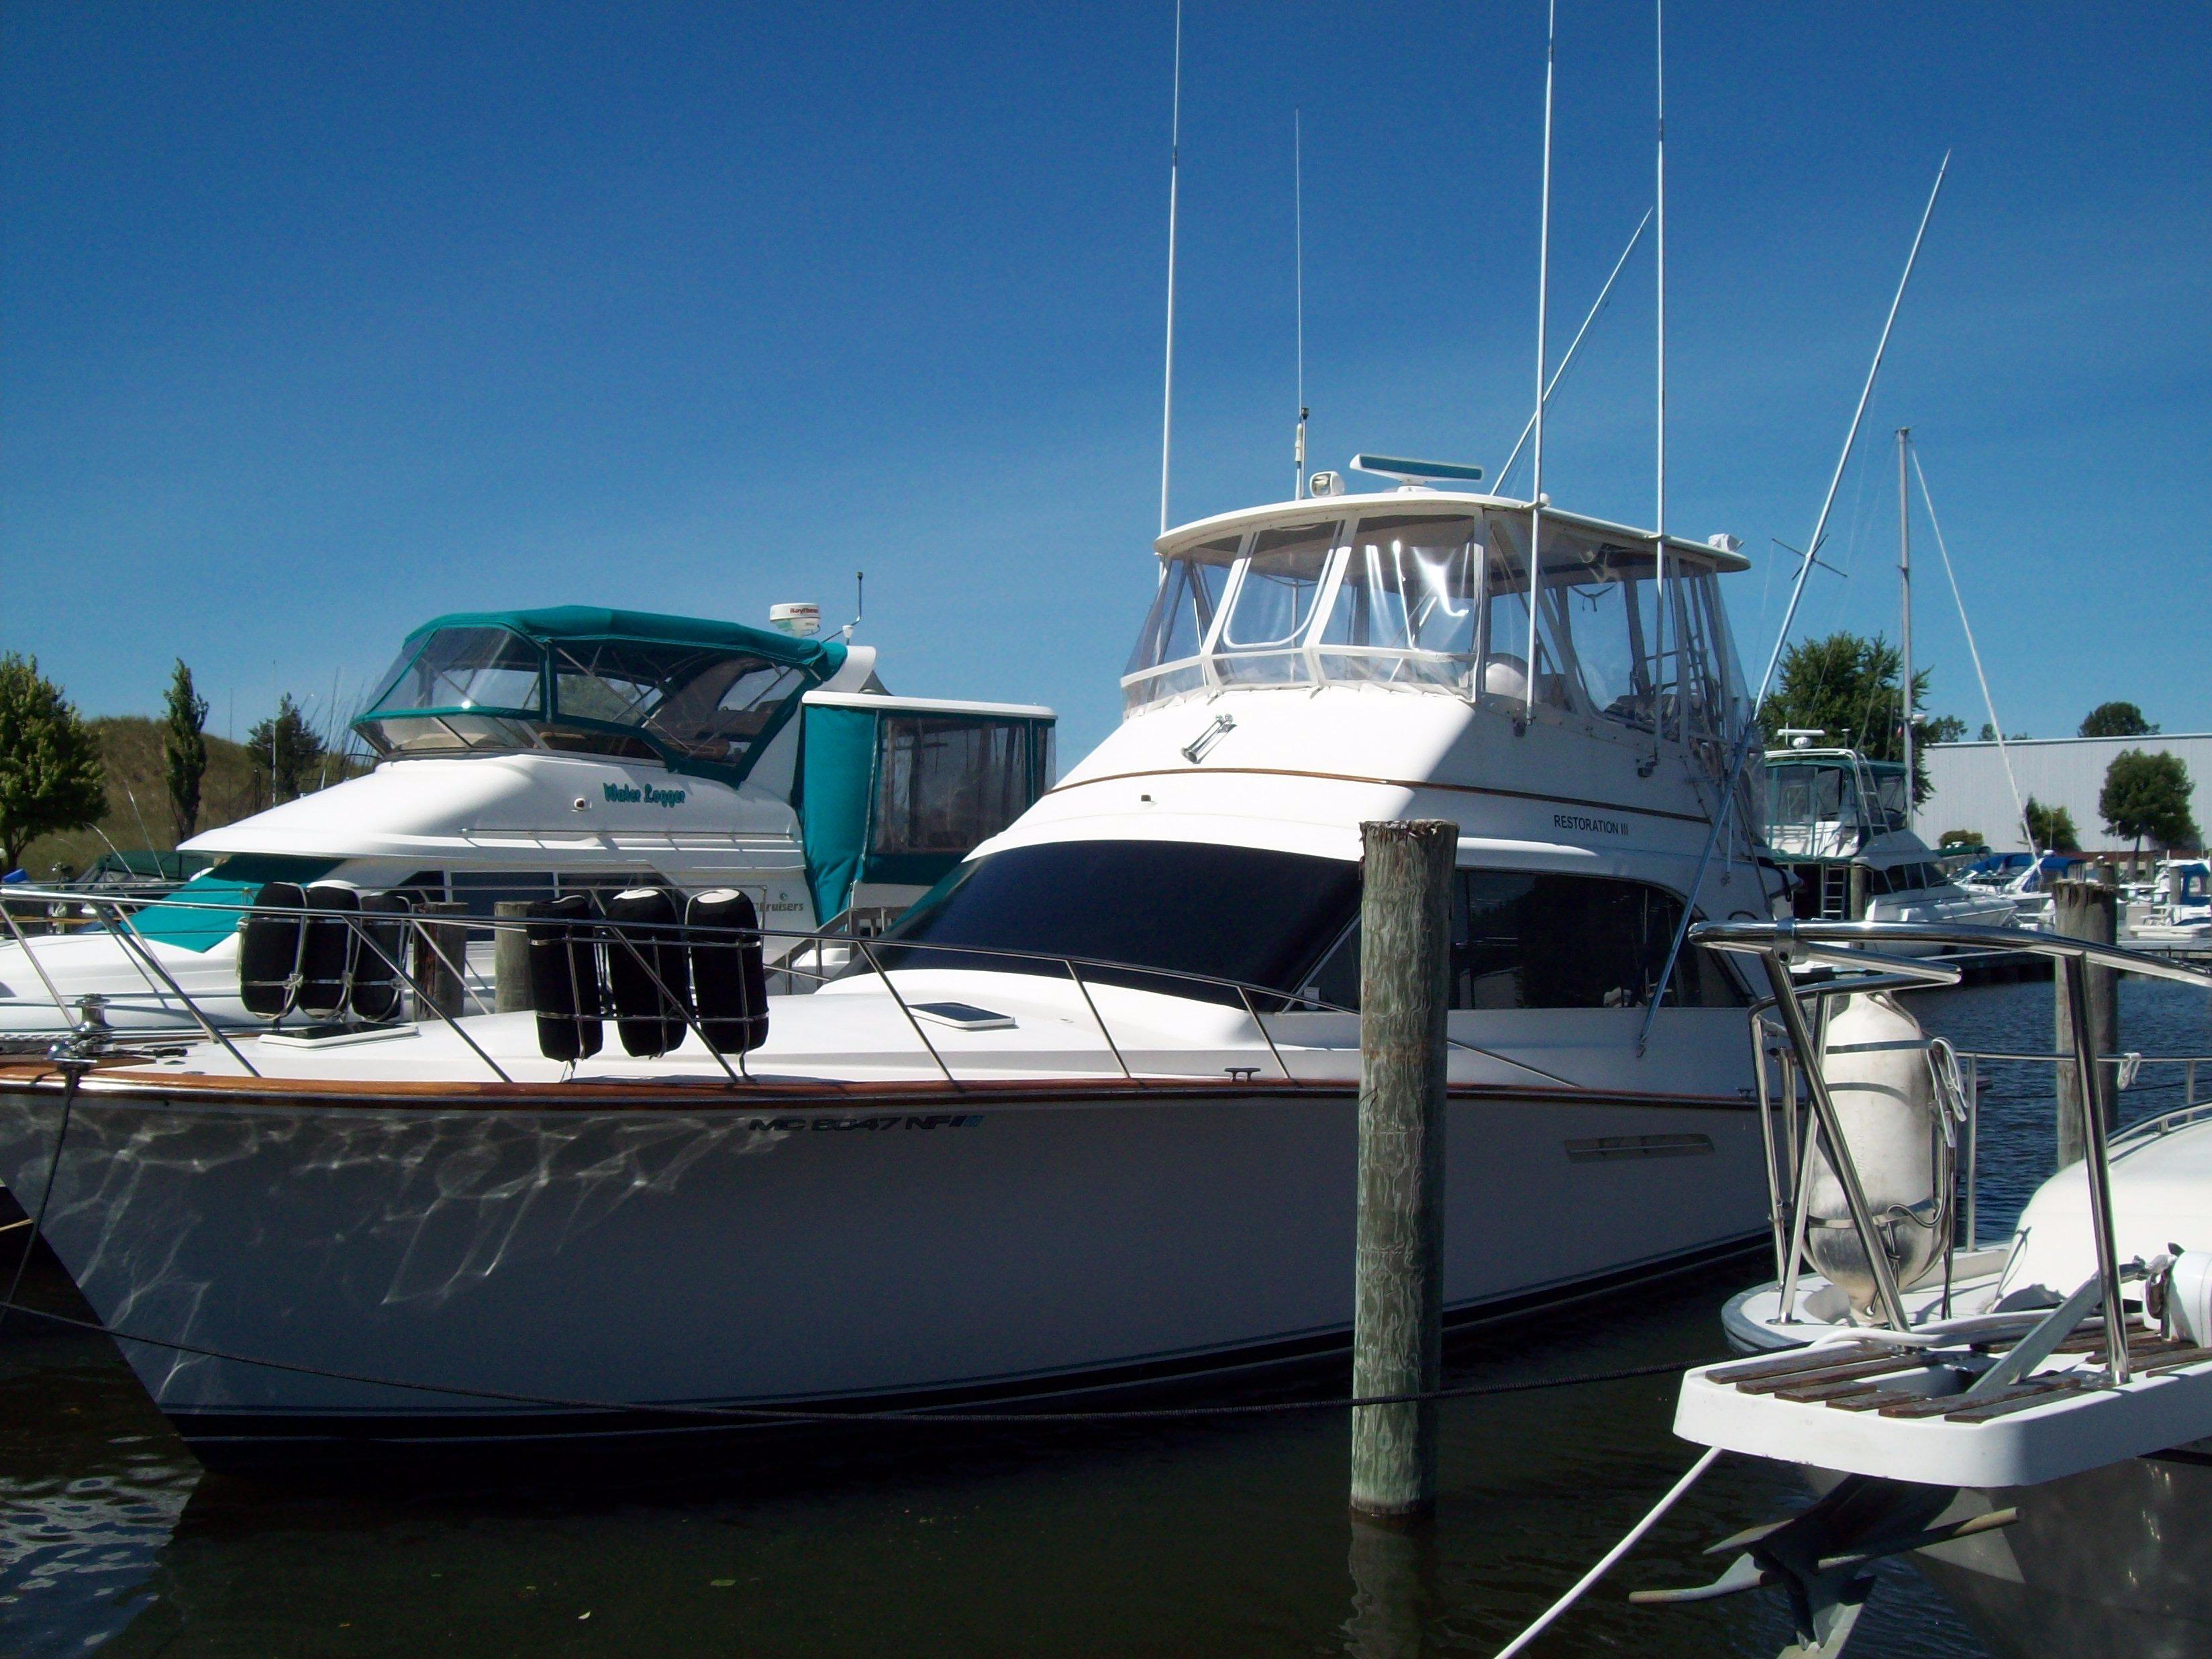 1987 ocean yachts 48 super sport yacht for sale in grand for Ocean yachts 48 motor yacht for sale